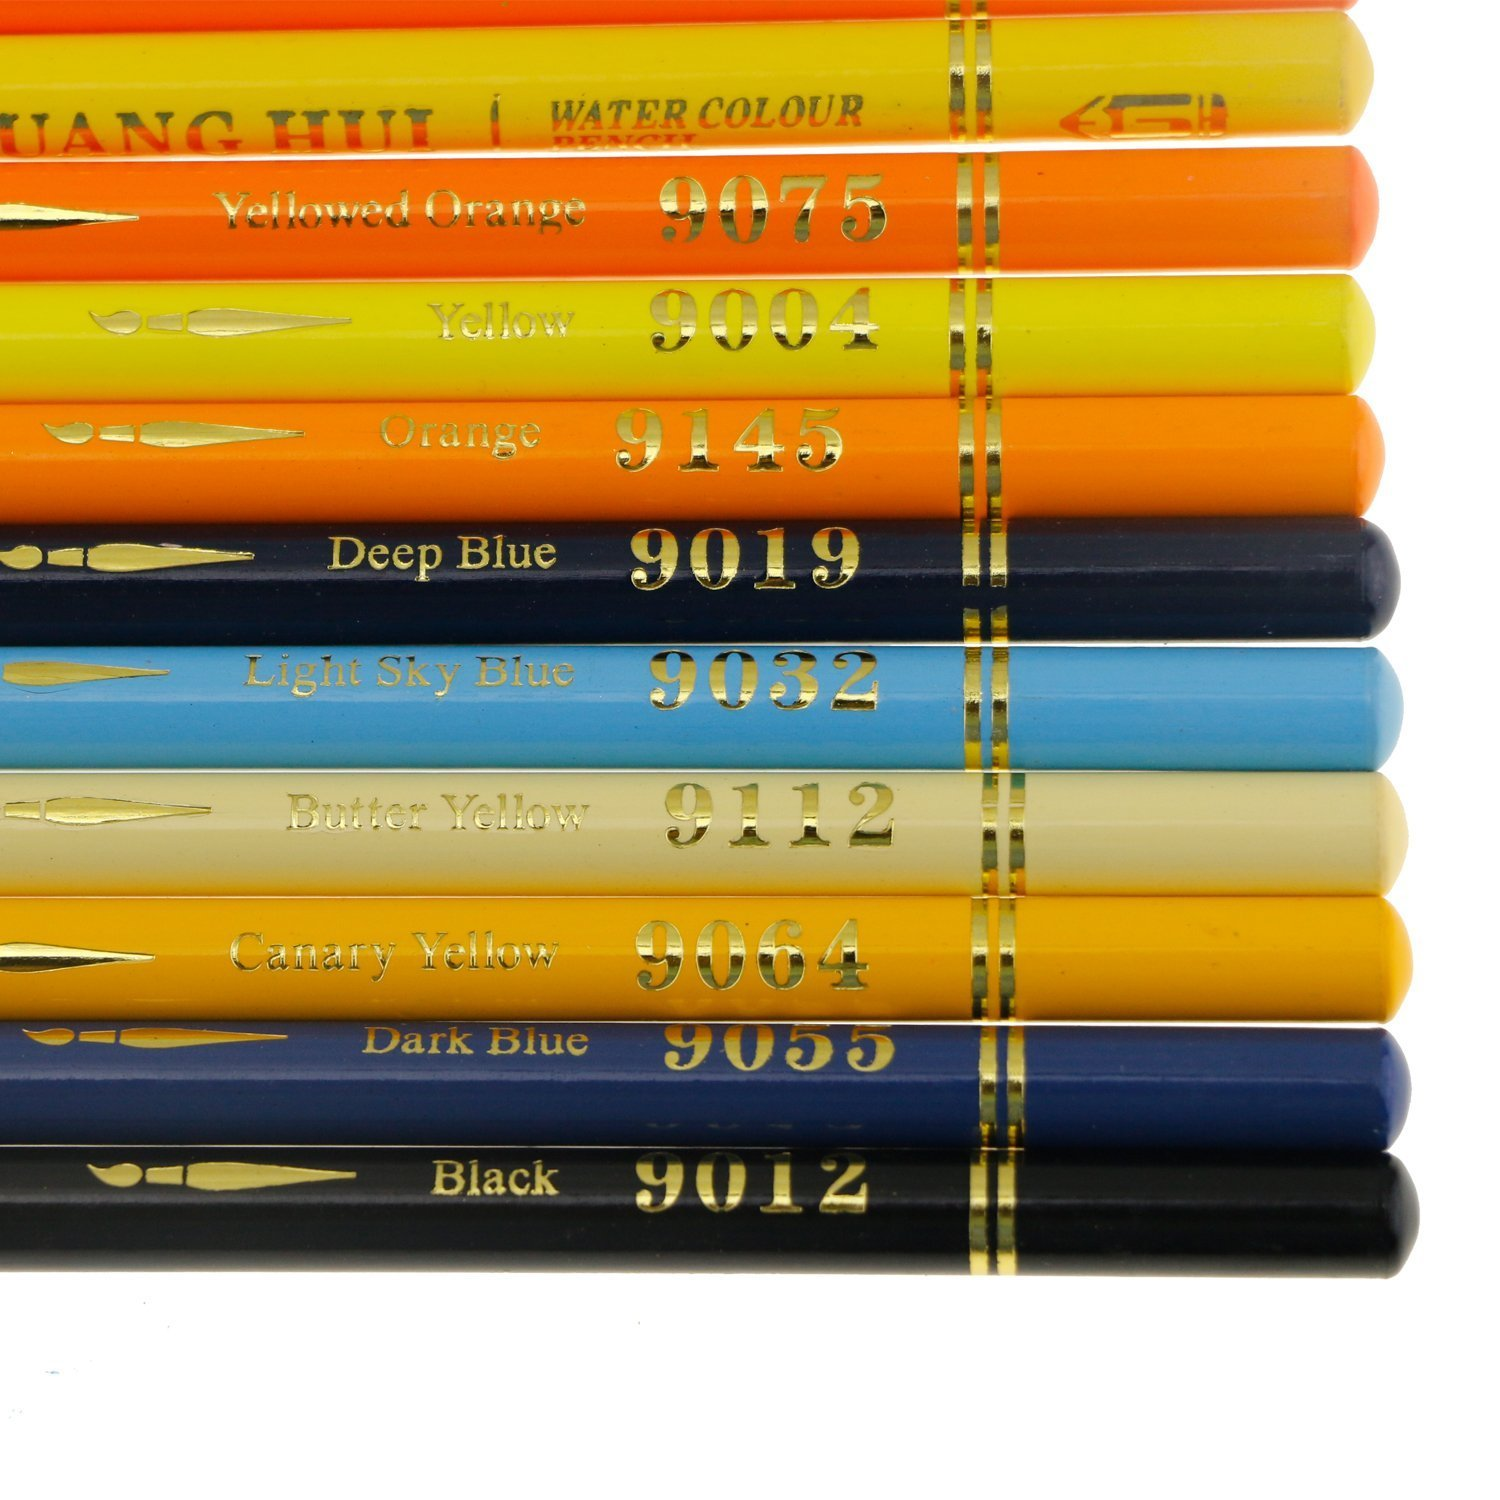 Set of 150 Watercolor Pencils with Unique Color Name, Water Soluble Art Pencils for Adult Coloring Book Sketching Painting